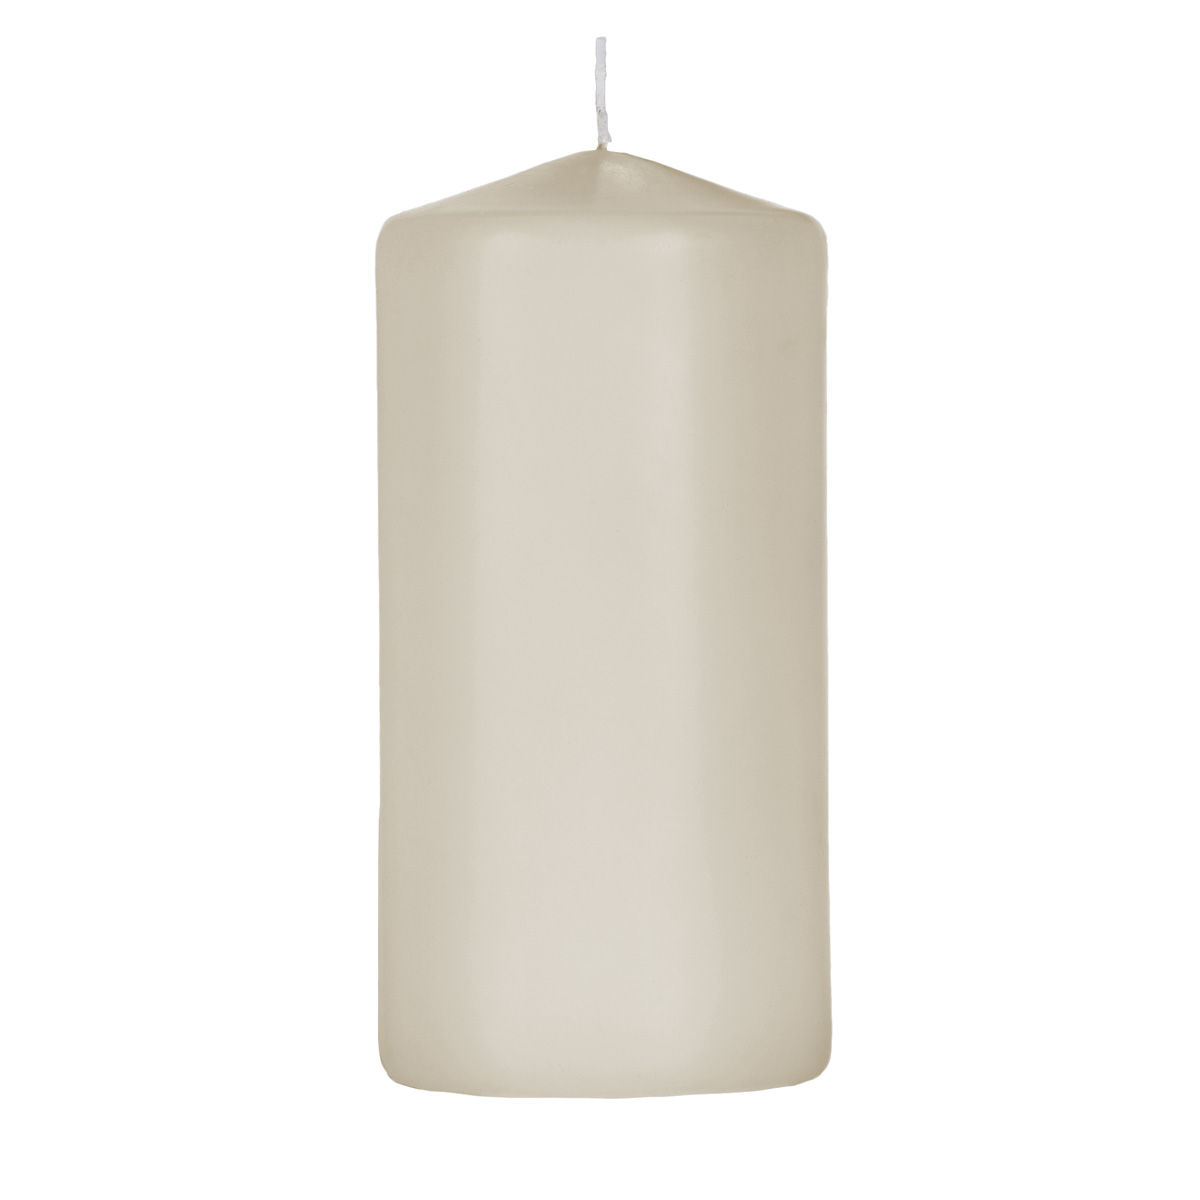 3x6 Ivory Pillar Candle - Unscented